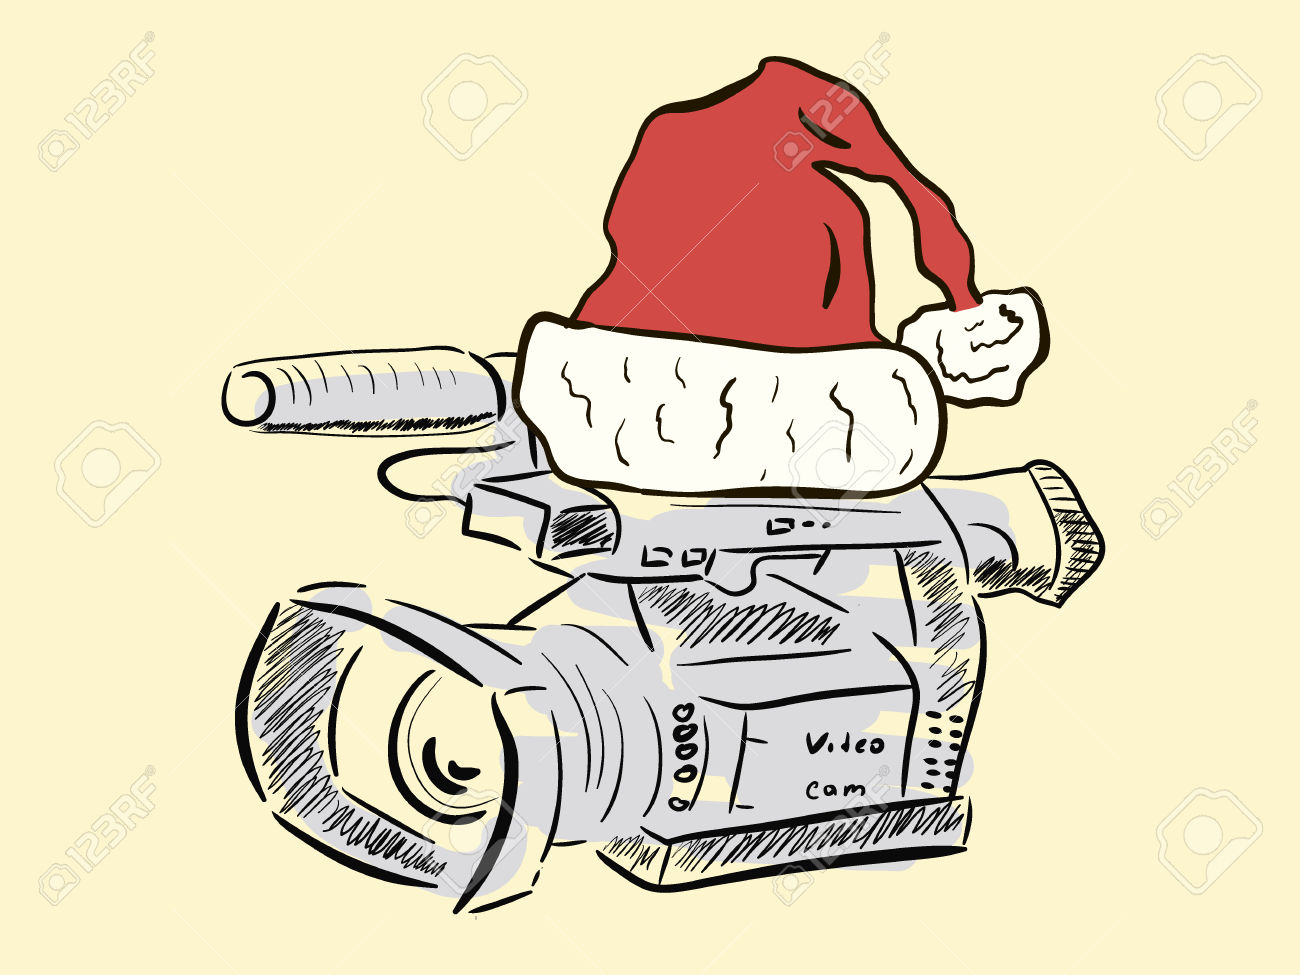 Big Video Camera In A Christmas Red Cap Royalty Free Cliparts.